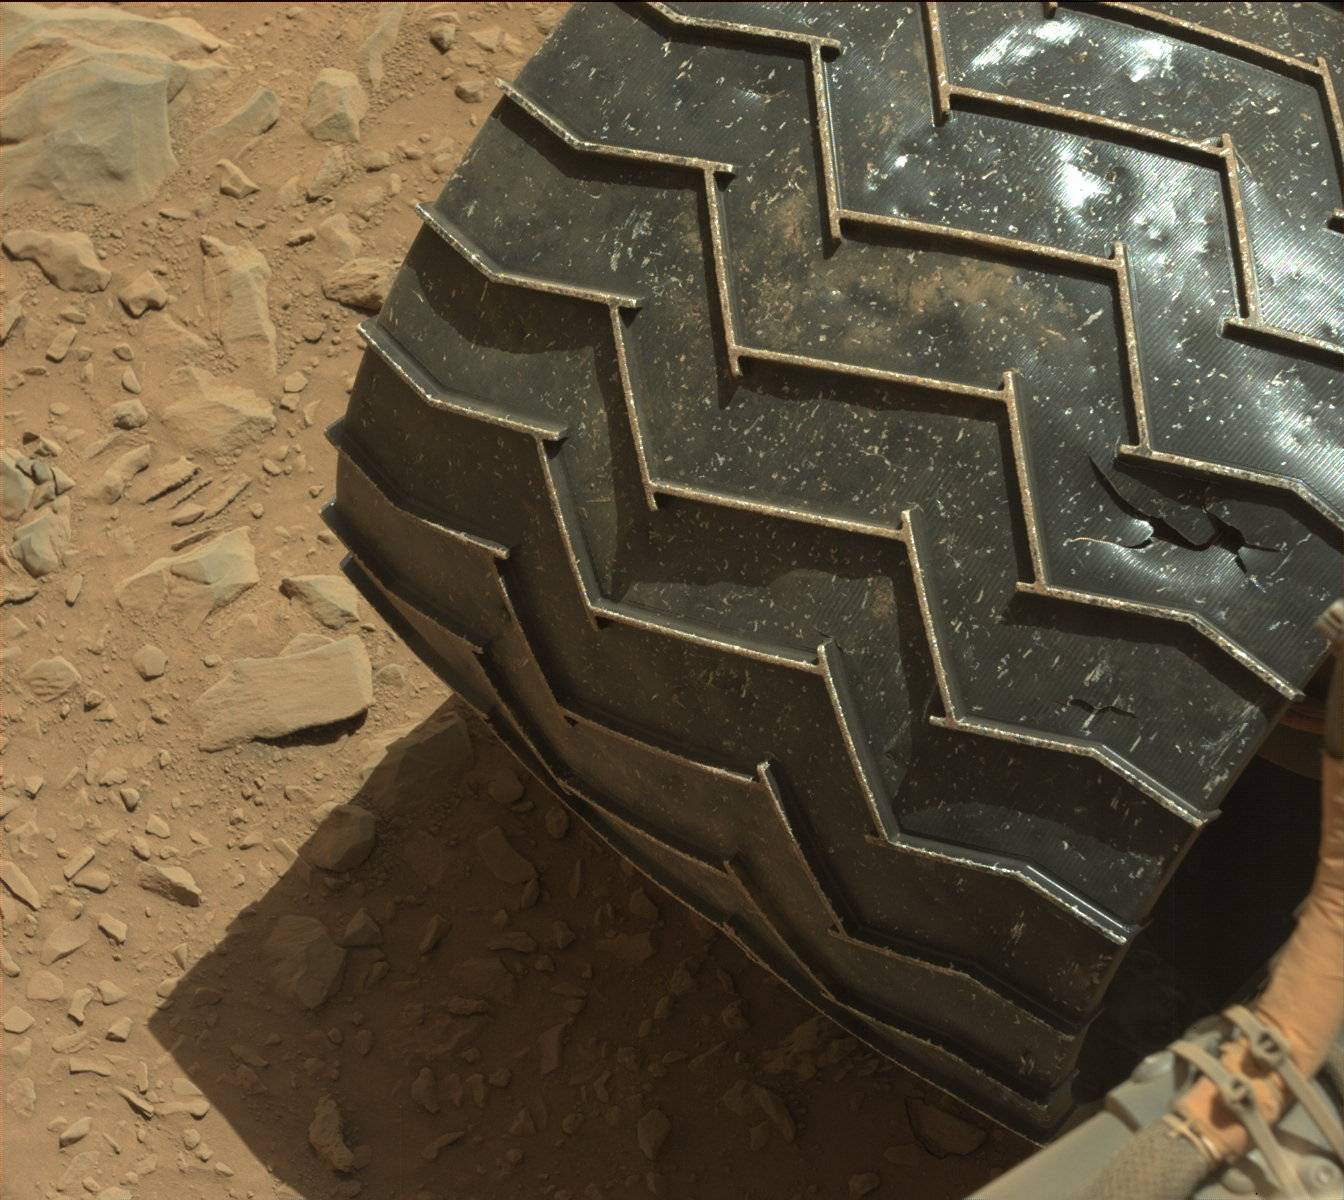 Rover Wheel Damage